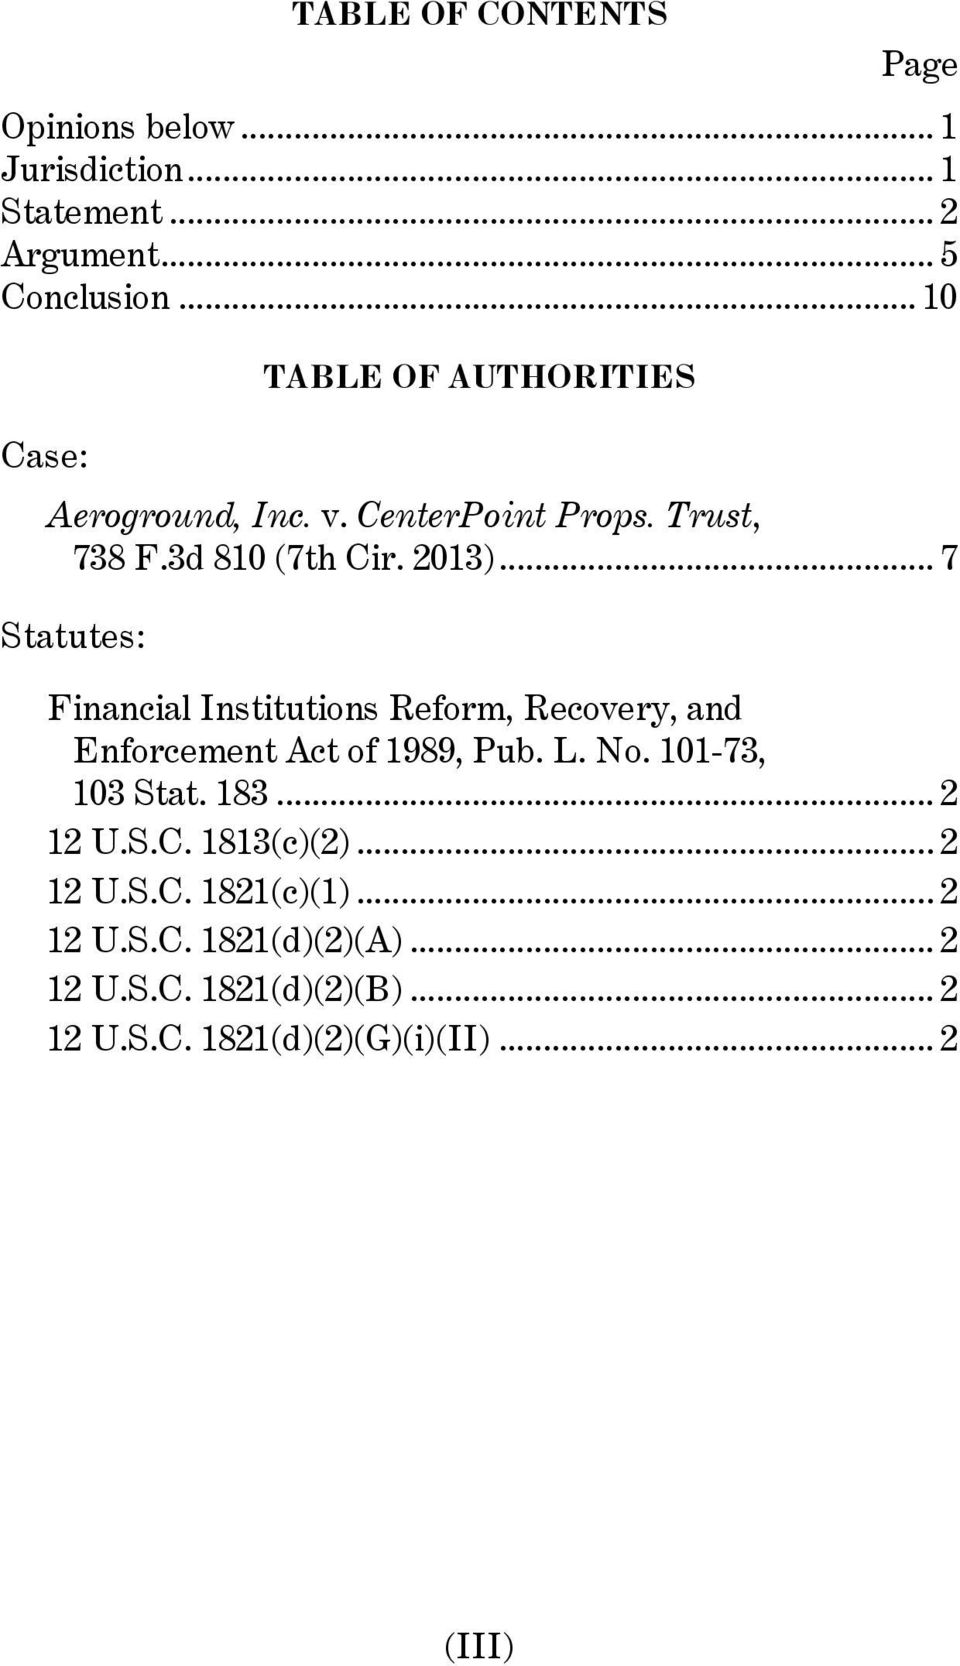 .. 7 Statutes: Financial Institutions Reform, Recovery, and Enforcement Act of 1989, Pub. L. No. 101-73, 103 Stat. 183.